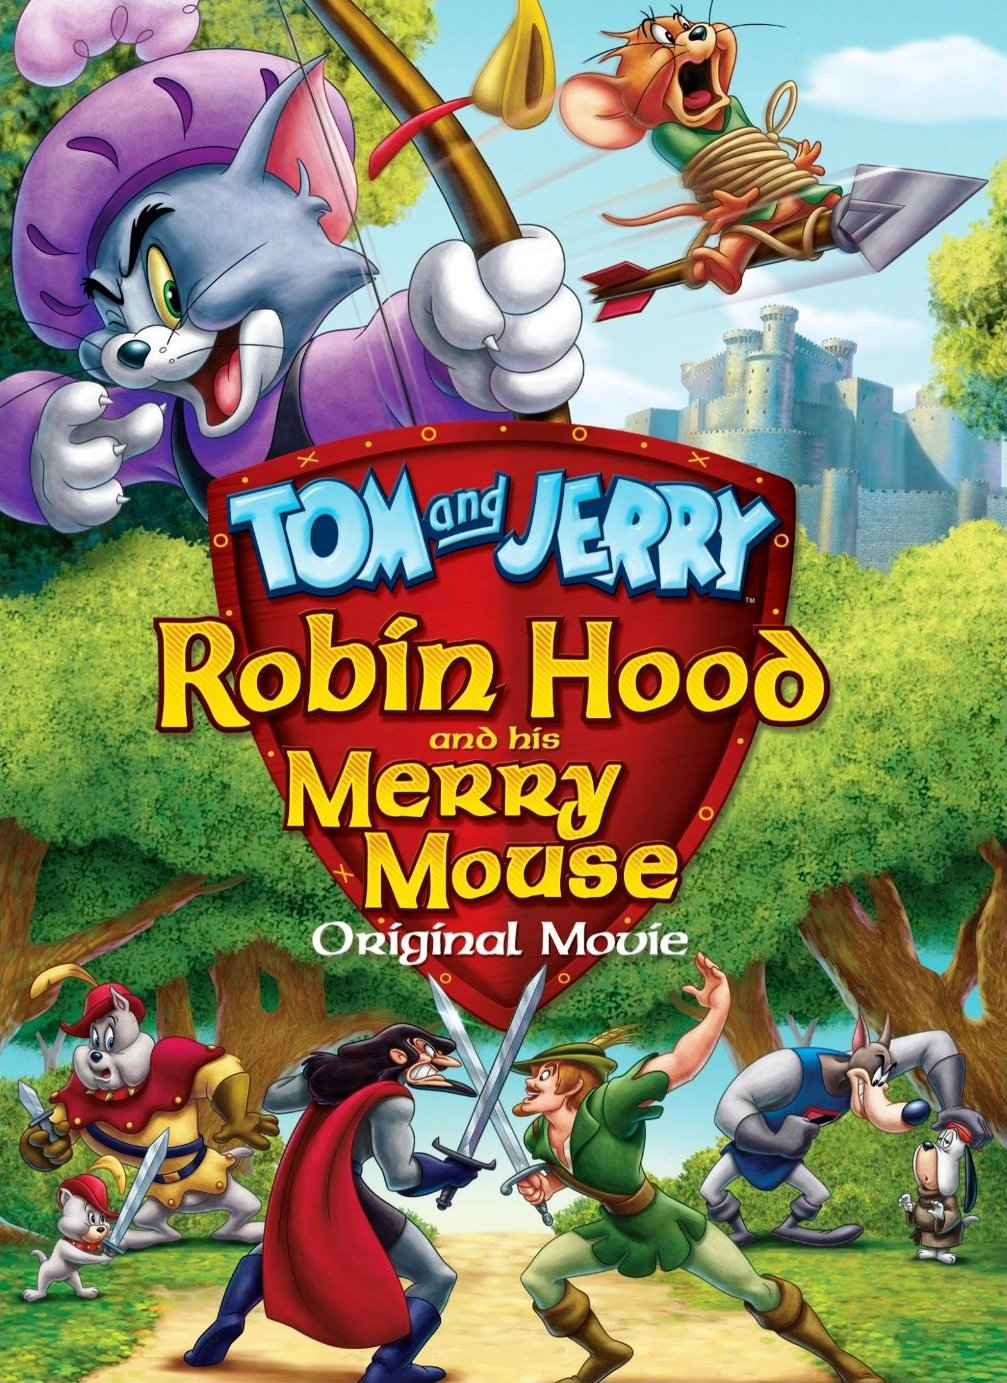 ... FOR TOM AND JERRY ROBIN HOOD AND HIS MERRY MOUSE SCREENSAVERS FOR FREE